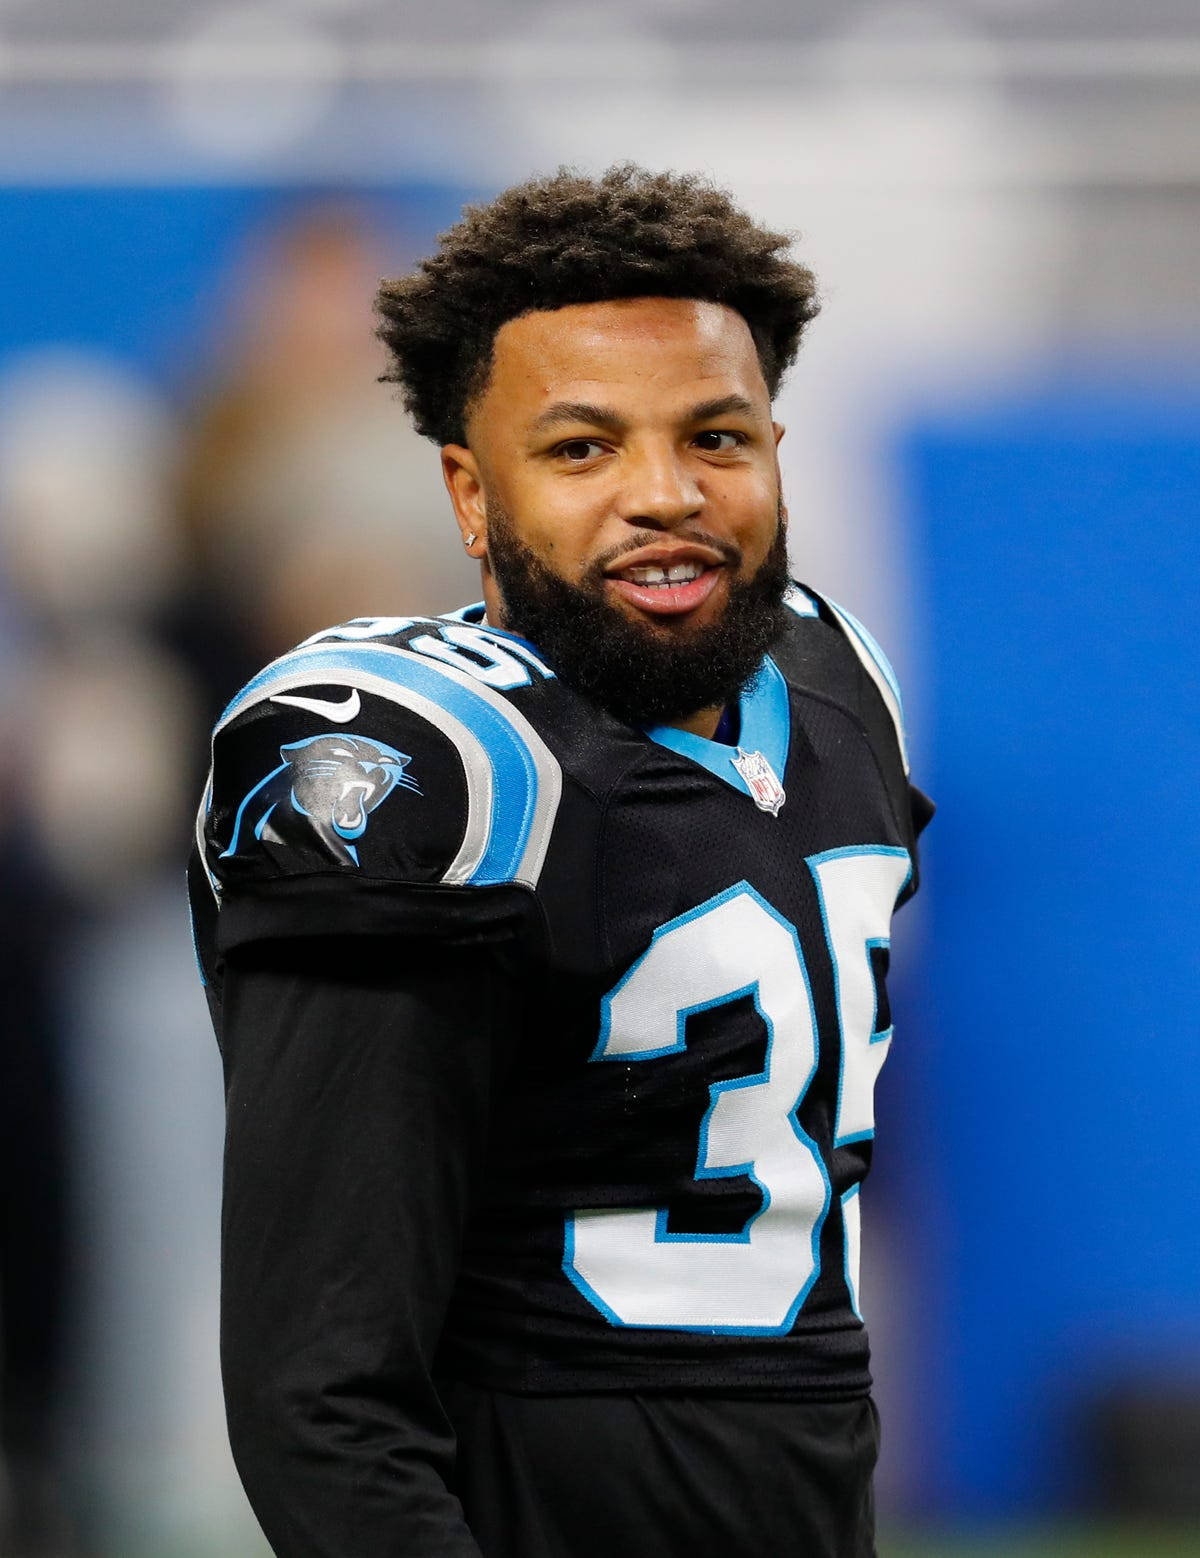 NFL roster cuts: Corn Elder cut by Carolina Panthers